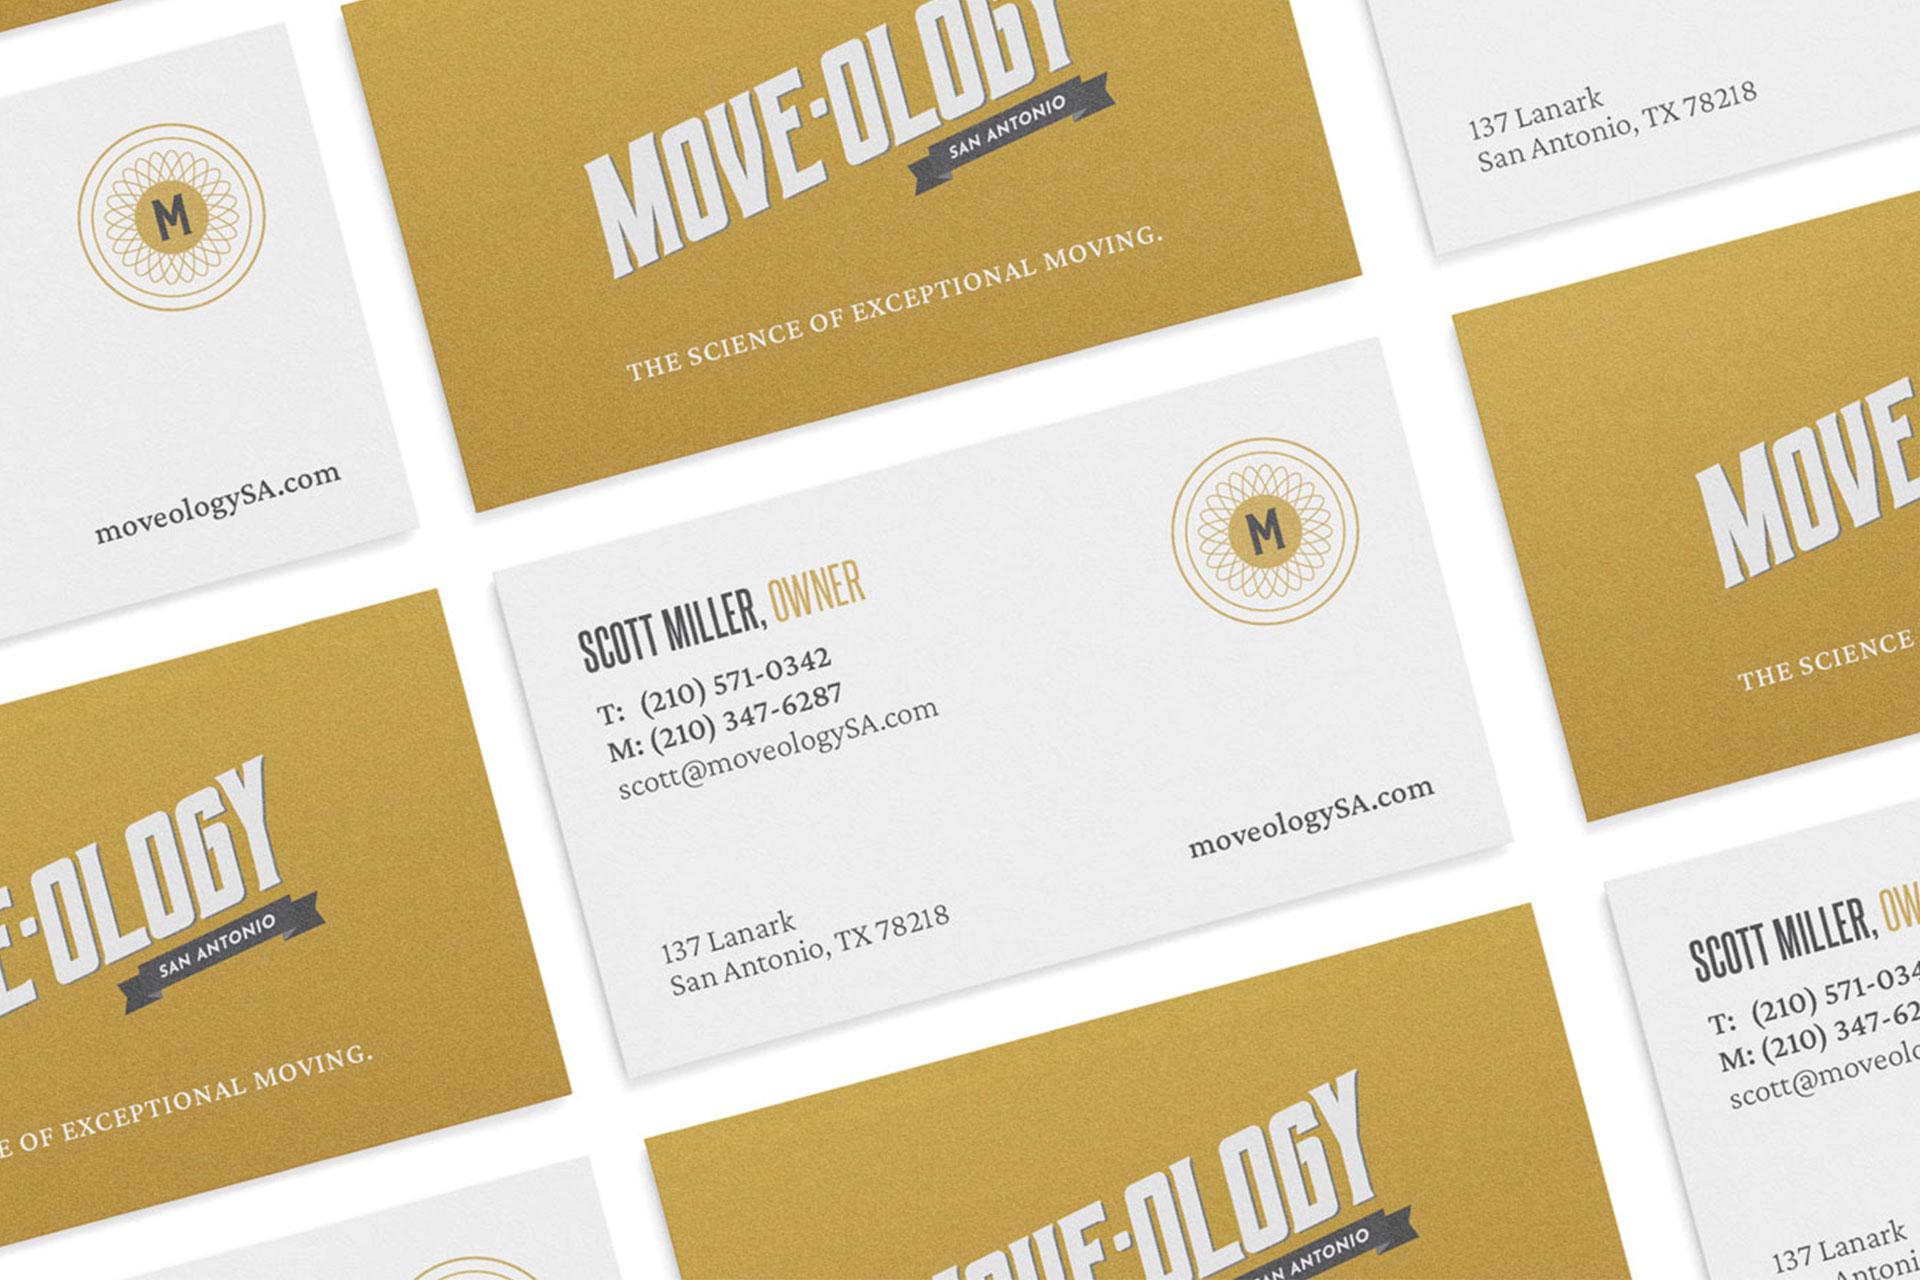 Moveology business cards